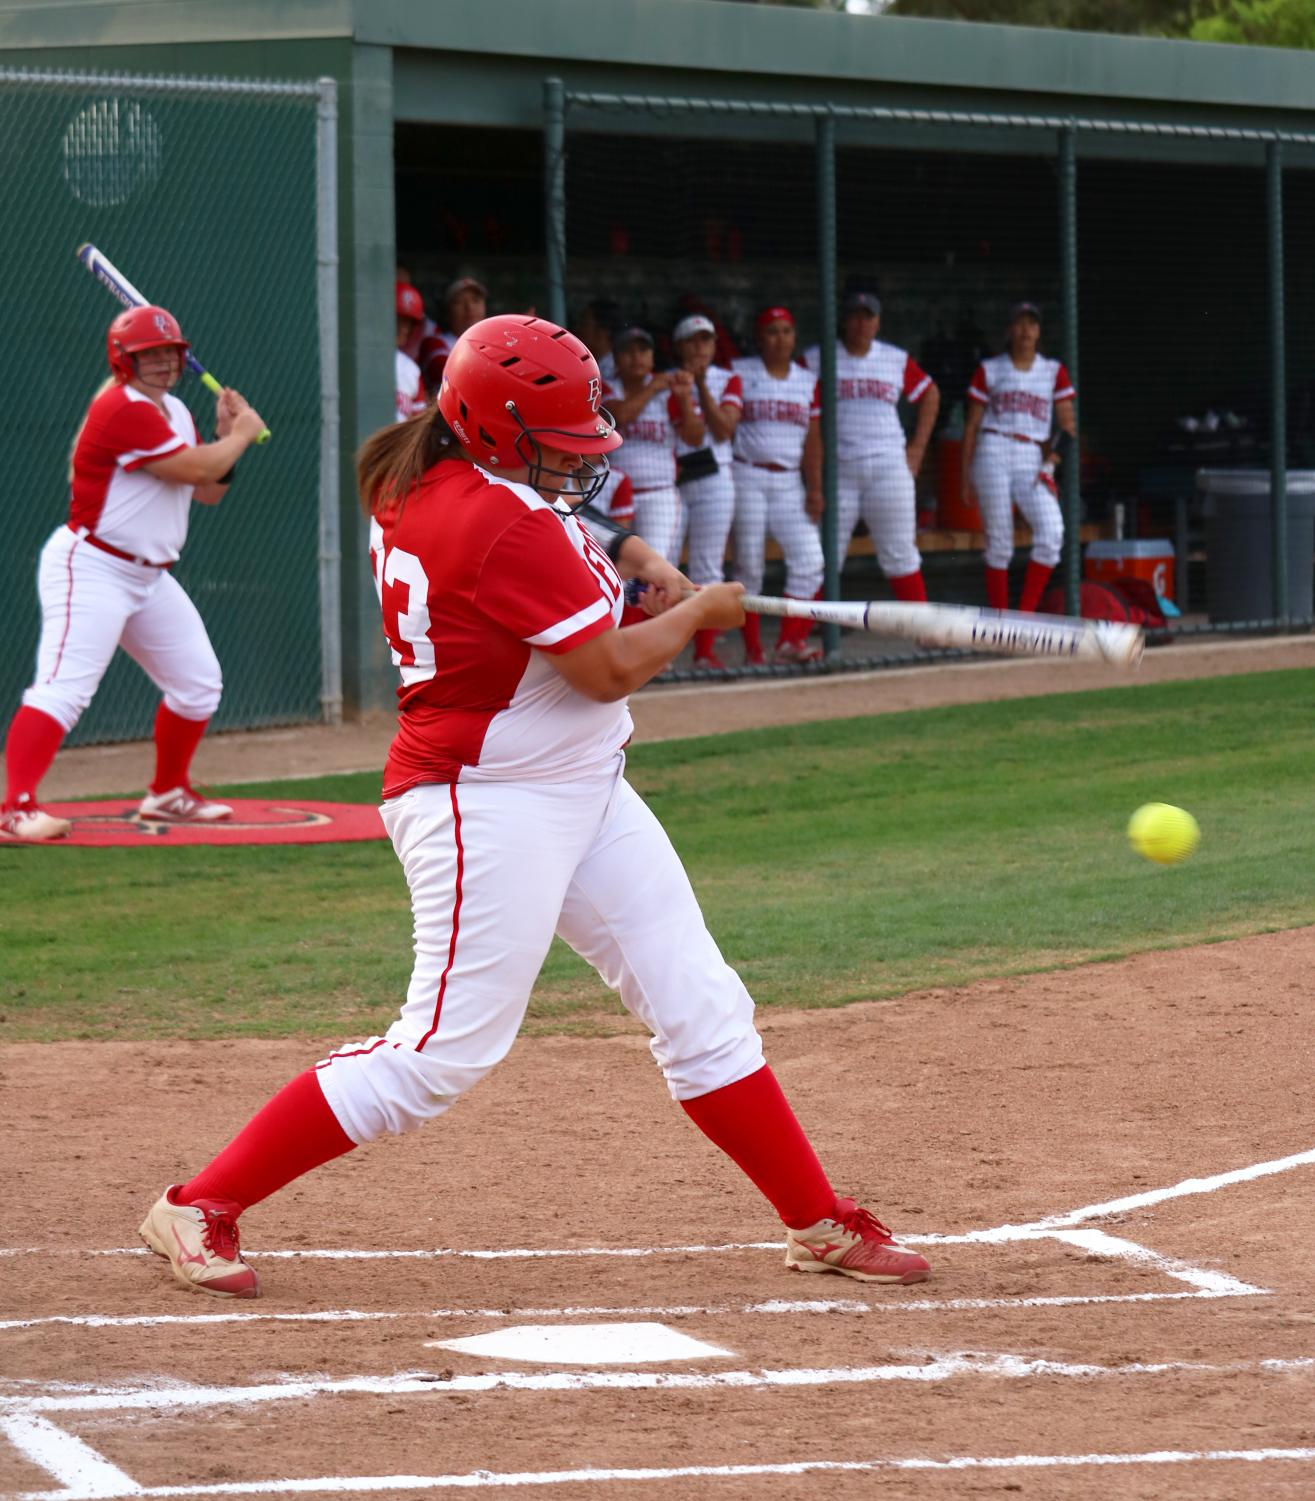 McKenna Valencia of Bakersfield College hitting the softball and running to first base at the home game against Santa Monica College.